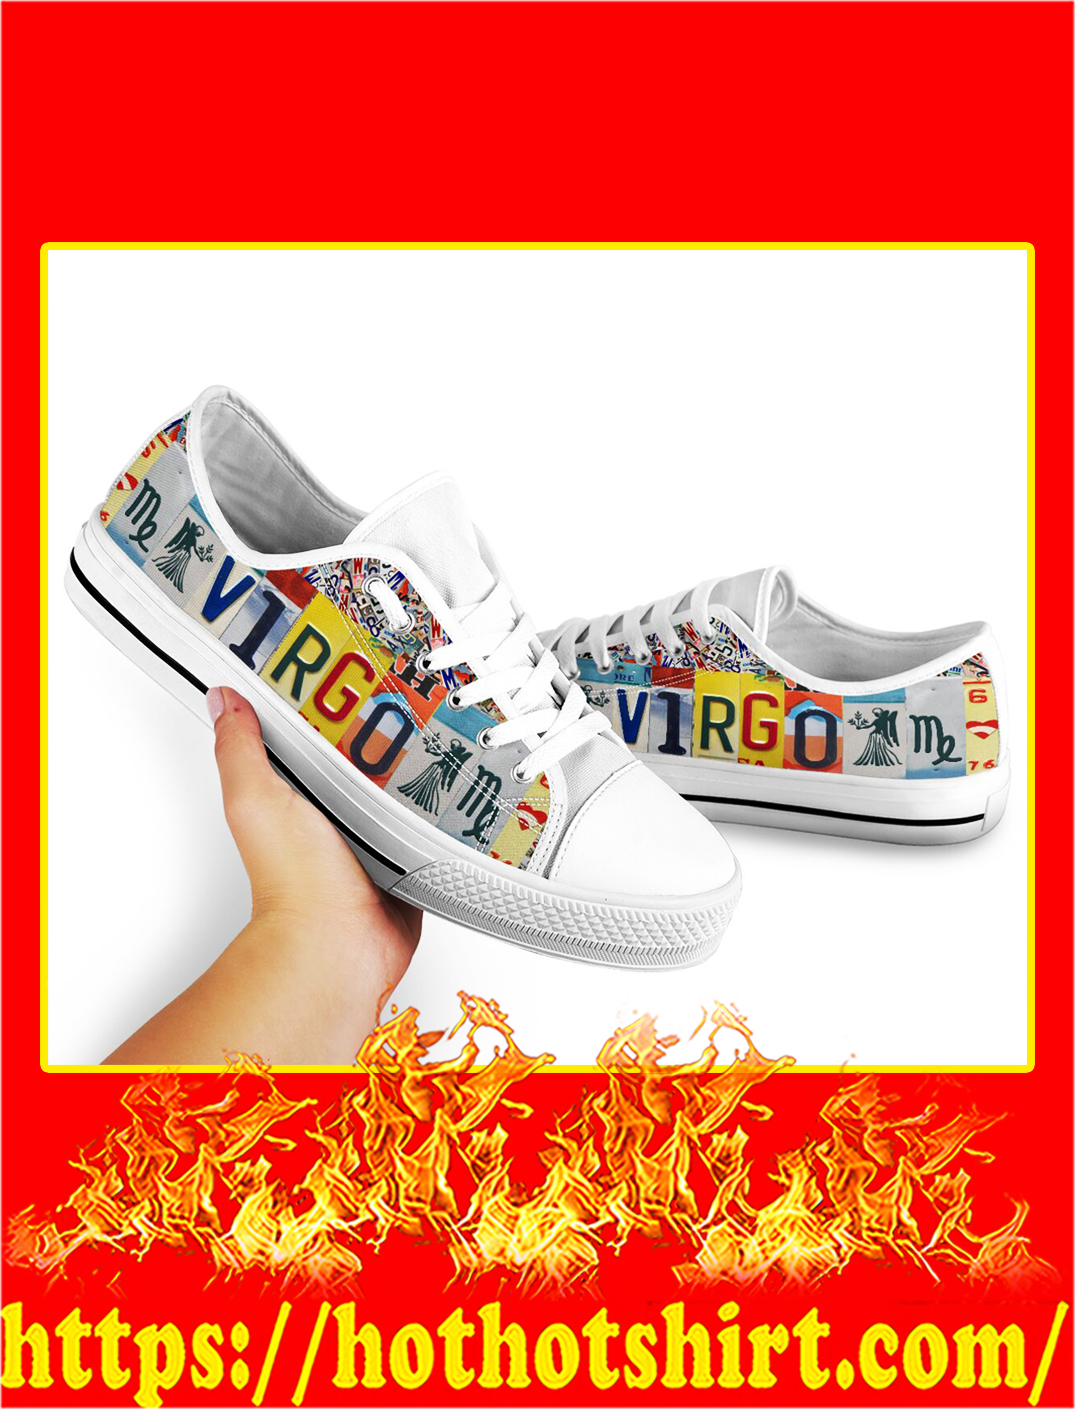 Virgo license plates low top shoes- pic 2